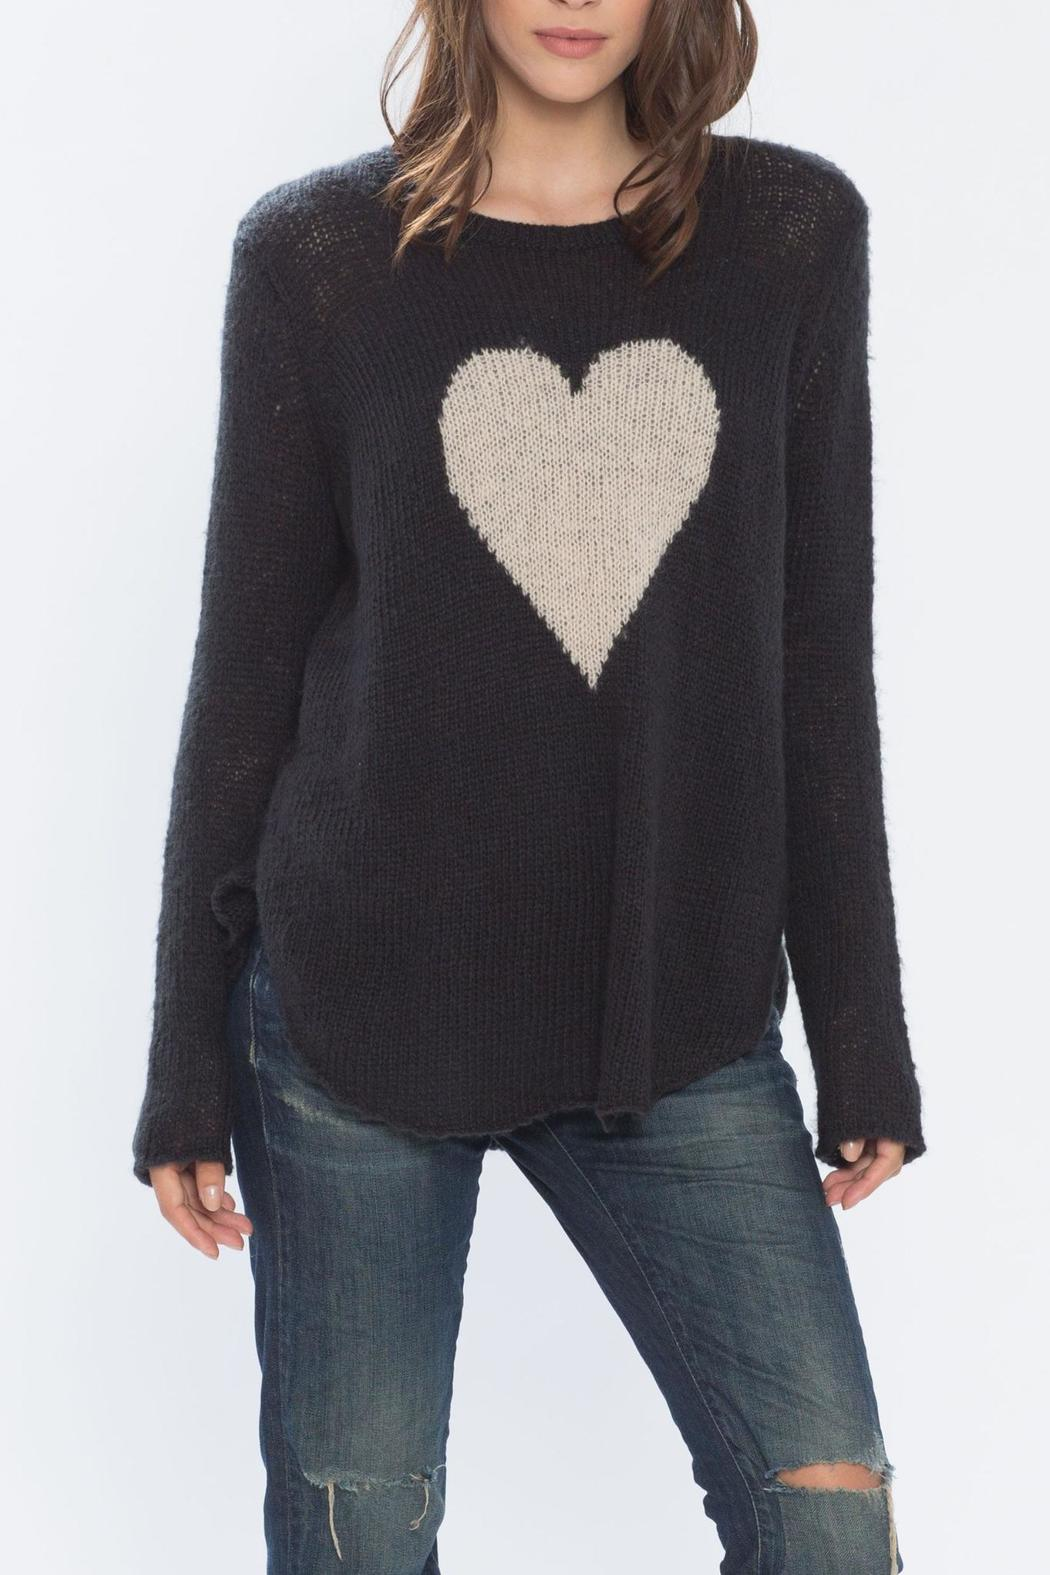 Wooden Ships Heart Sweater From Massachusetts By Sundance Clothing